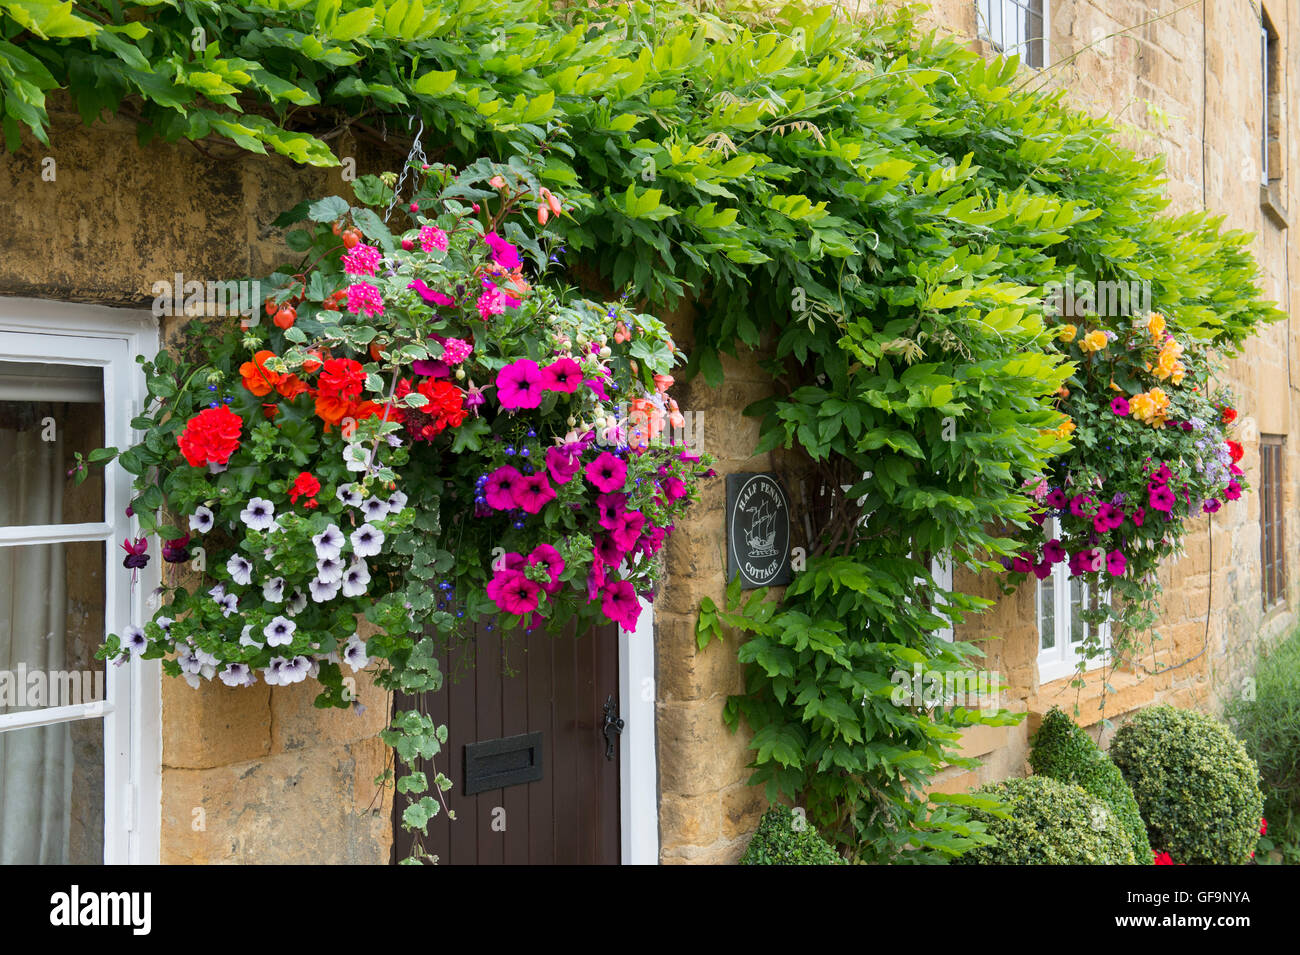 Hanging Basket And Clipped Box Hedge Plants Outside A Cottage. Broadway,  Cotswolds, Worcestershire